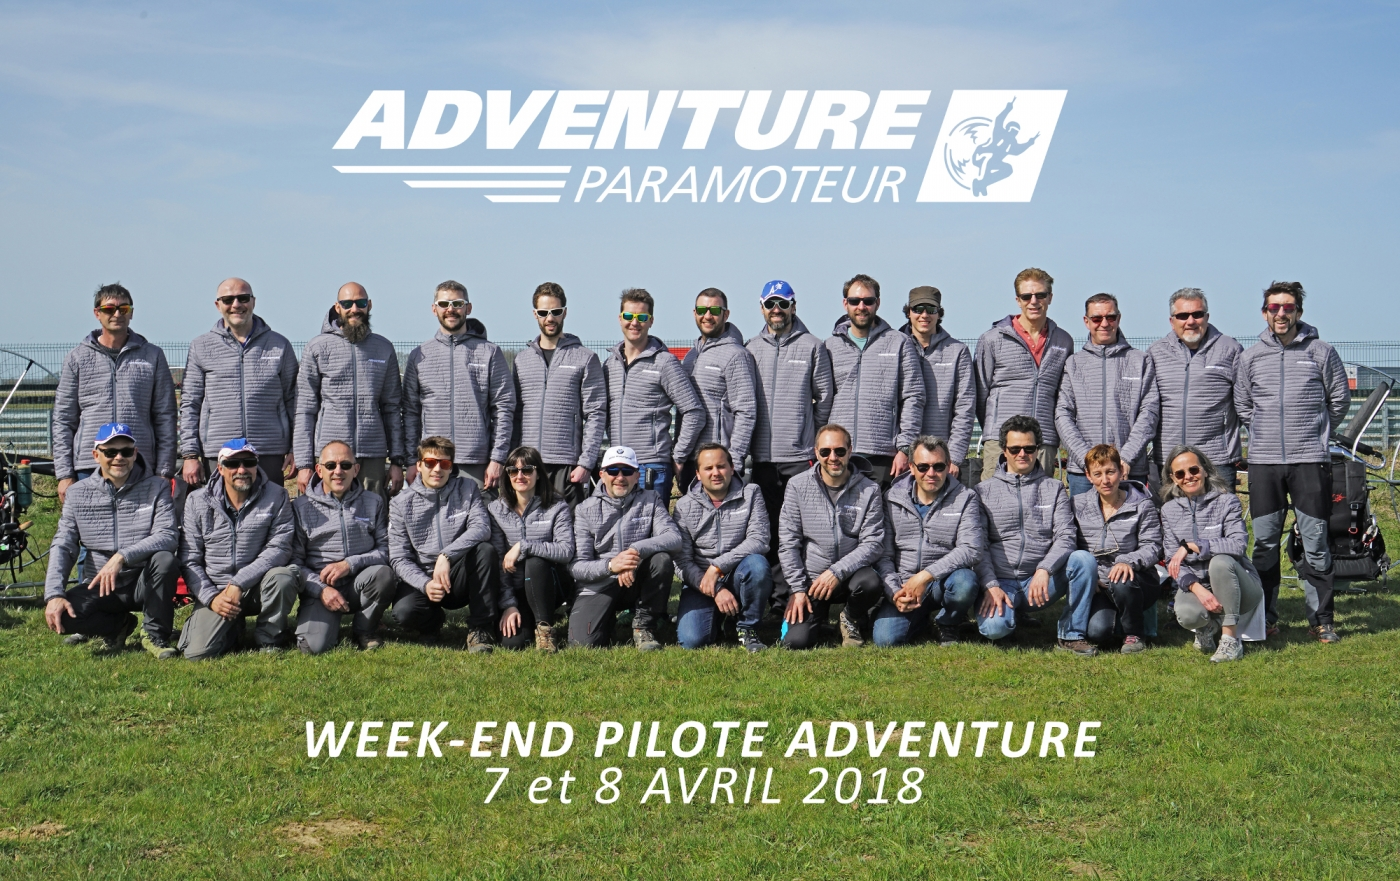 Week-end-Pilotes-Adventure-2018-paramoteur.jpg